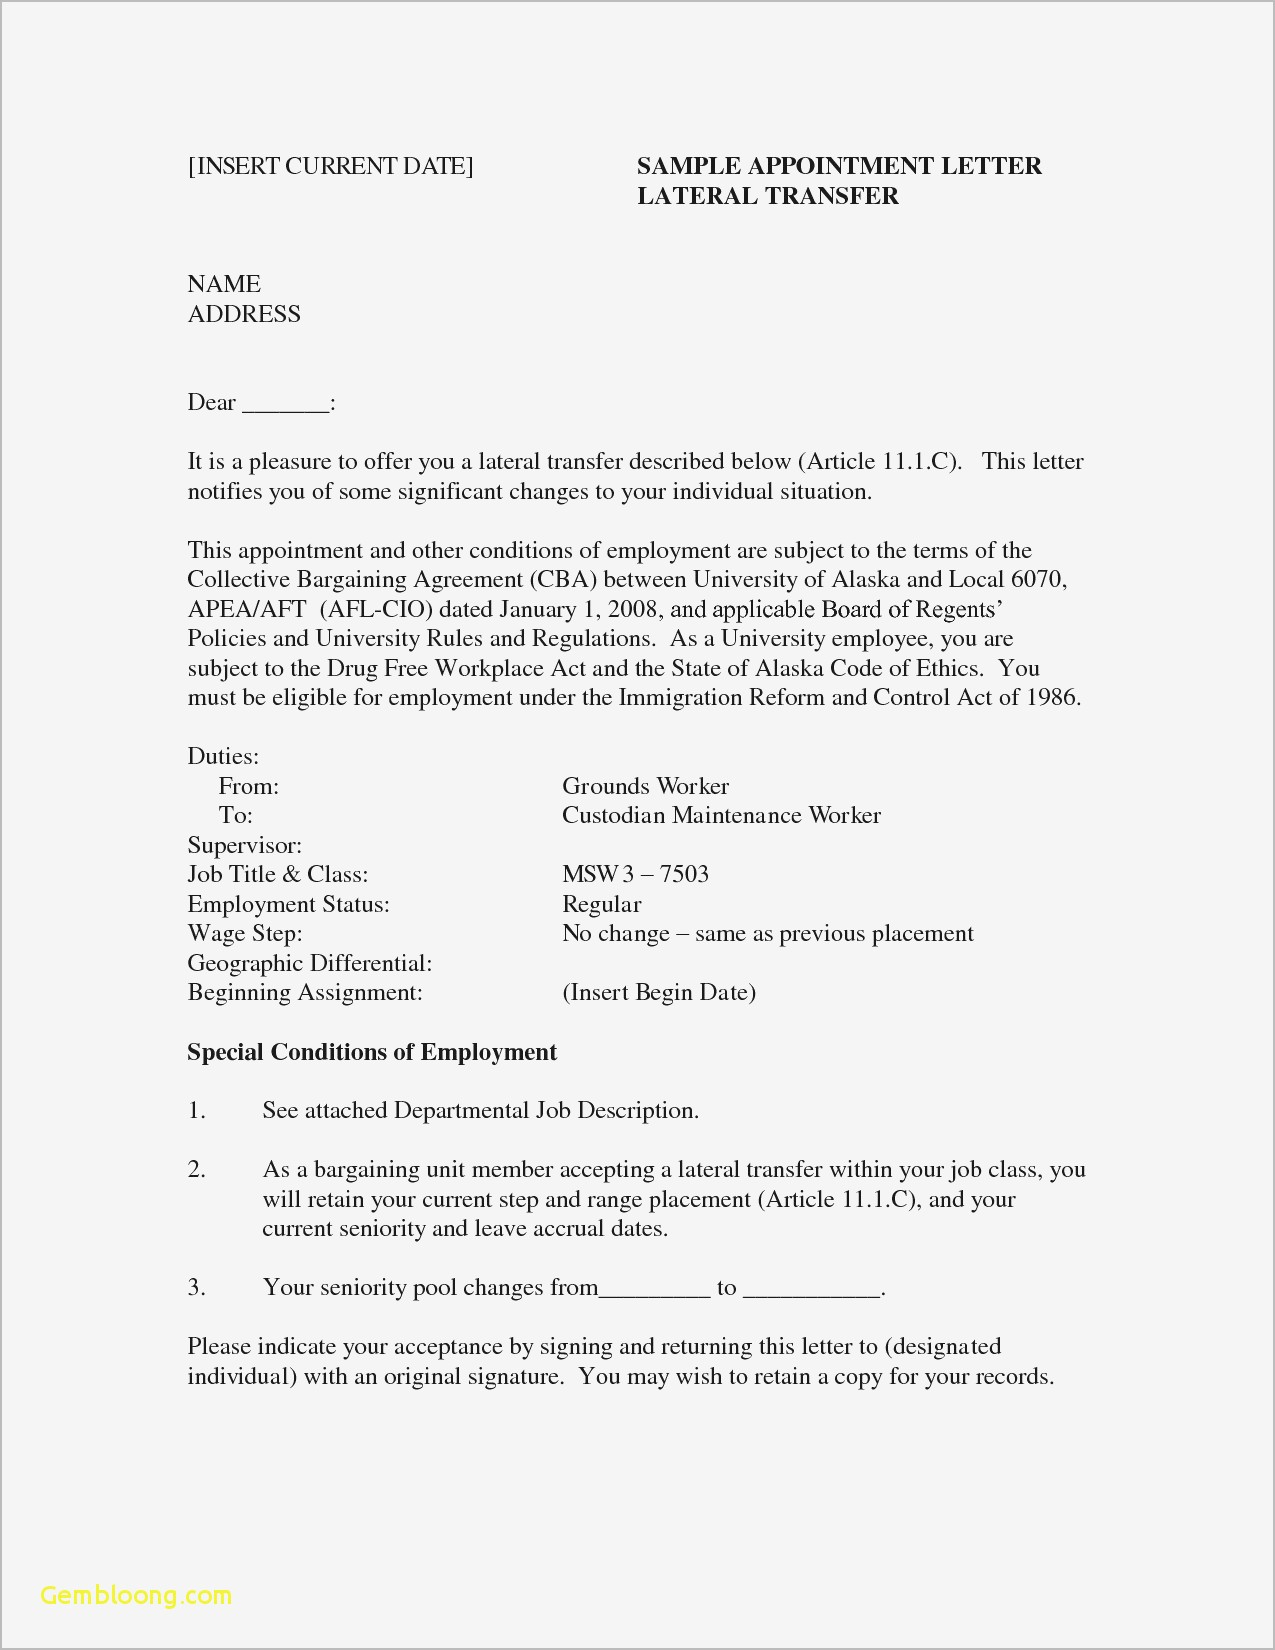 resume cover letter template pdf Collection-Cover Letter Template Word 2014 Fresh Relocation Cover Letters Od Specialist Sample Resume Portfolio 4-n